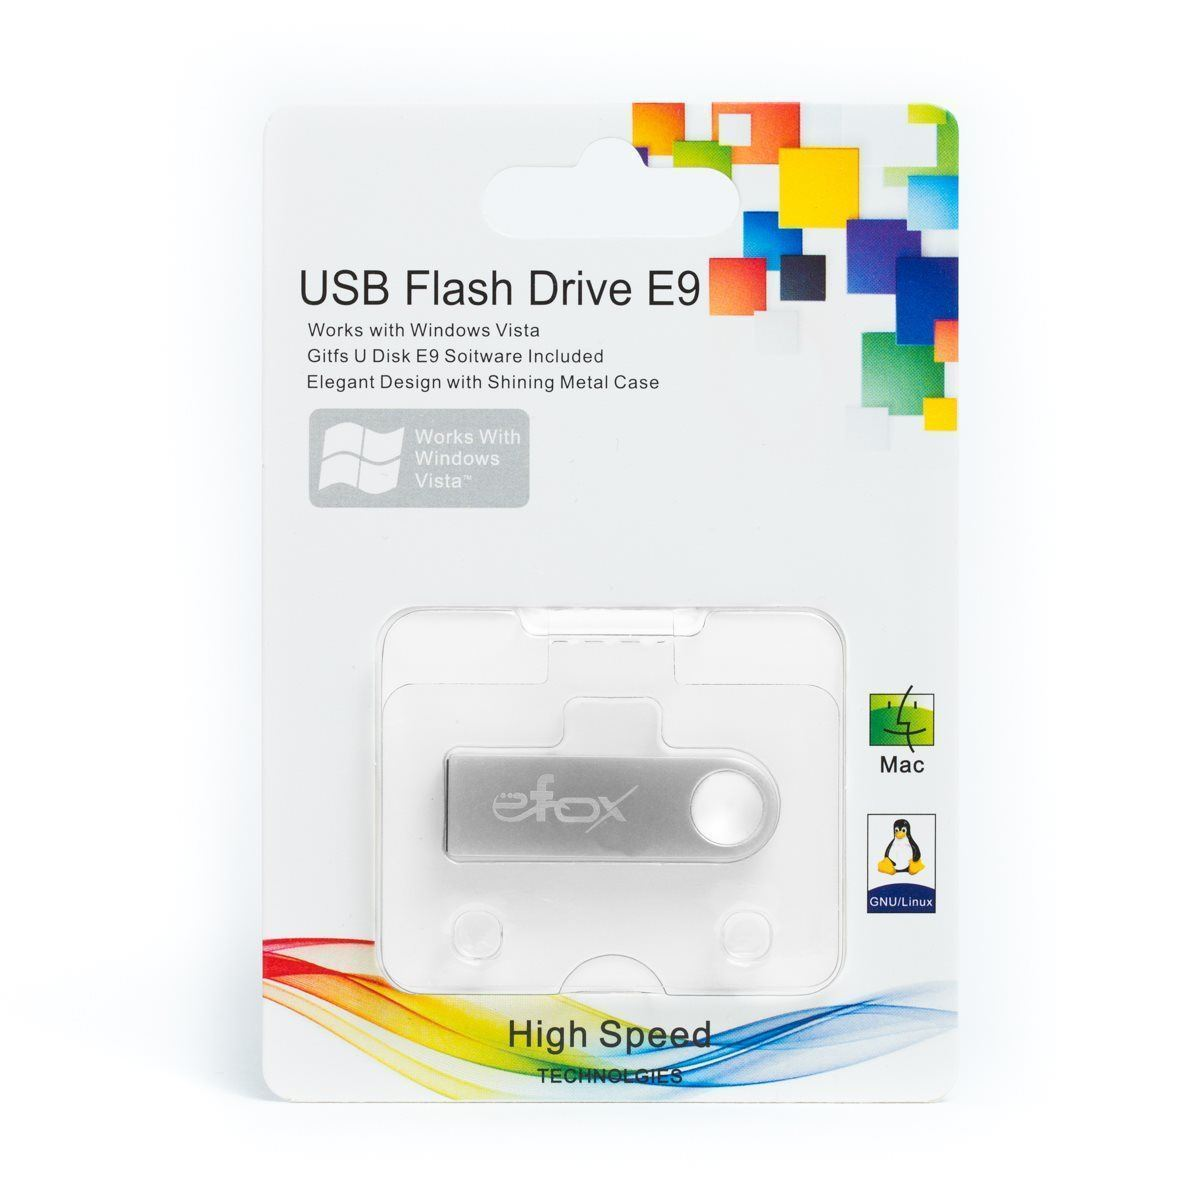 Imagine Memory sticks USB 2.0 PENDRIVE DTSE9 8GB ( chipset KINGSTON)